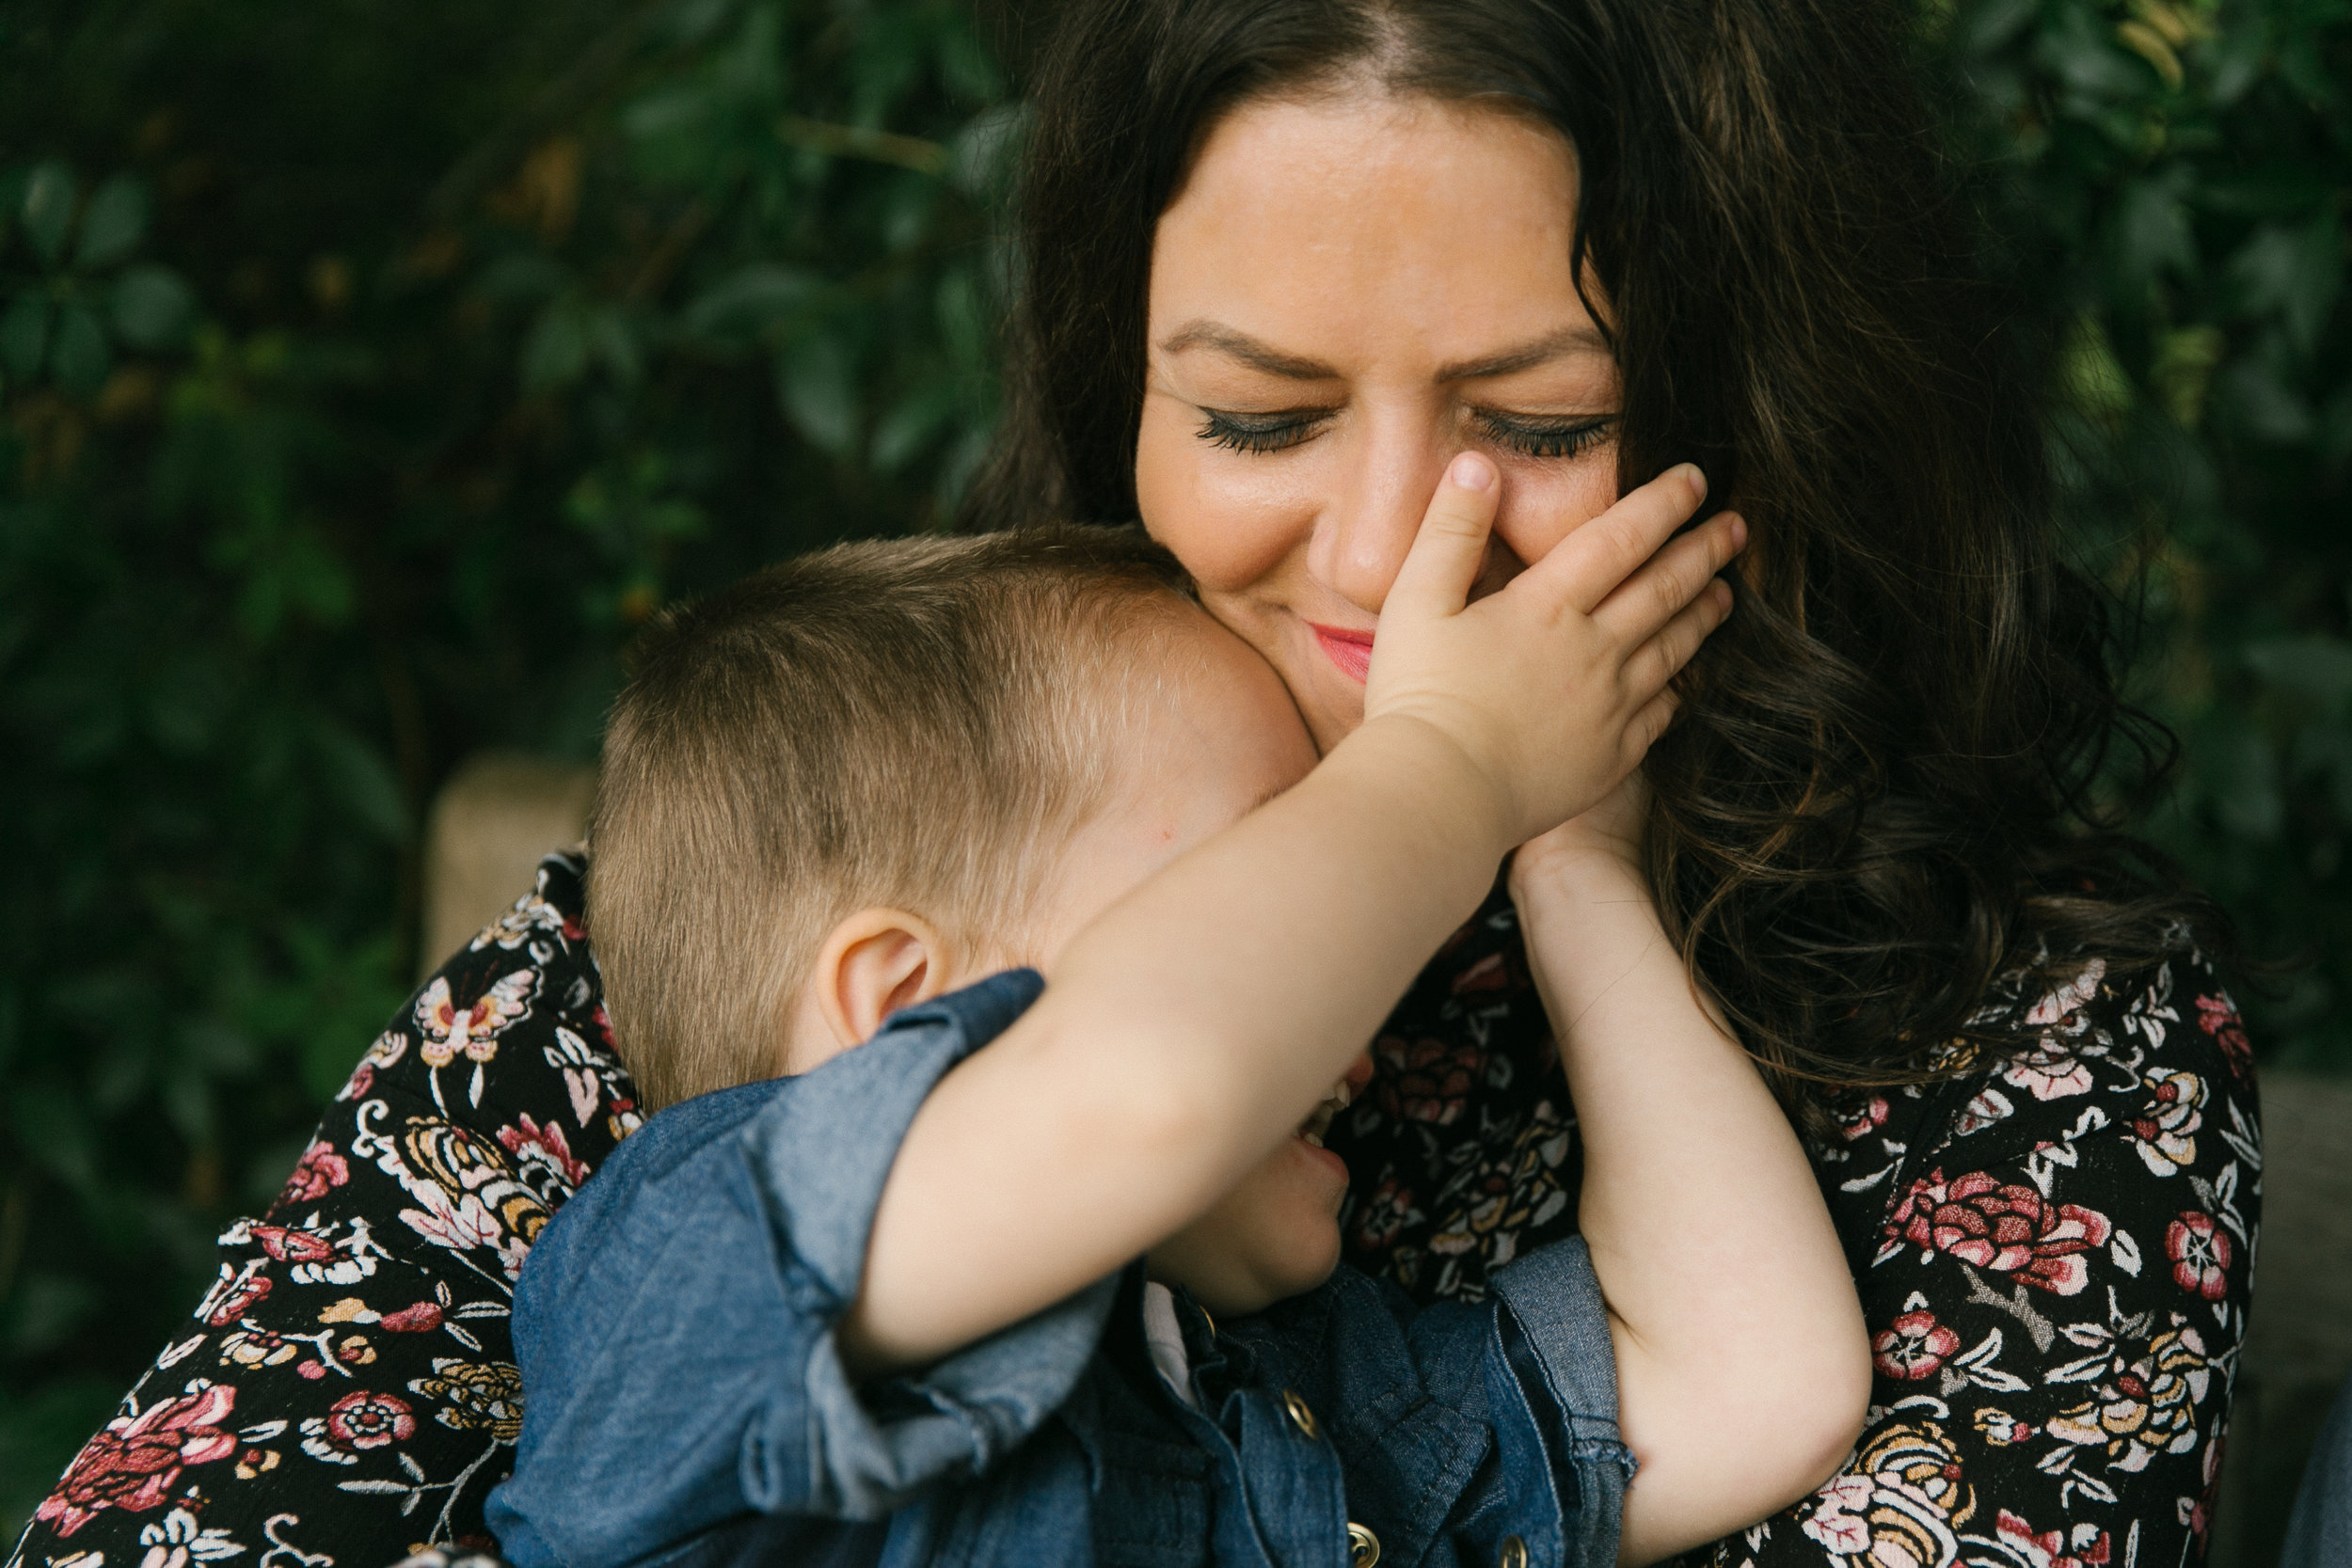 Family photos at Bellevue Botanical Garden, natural light with toddlers   Chelsea Macor Photography-5.jpg